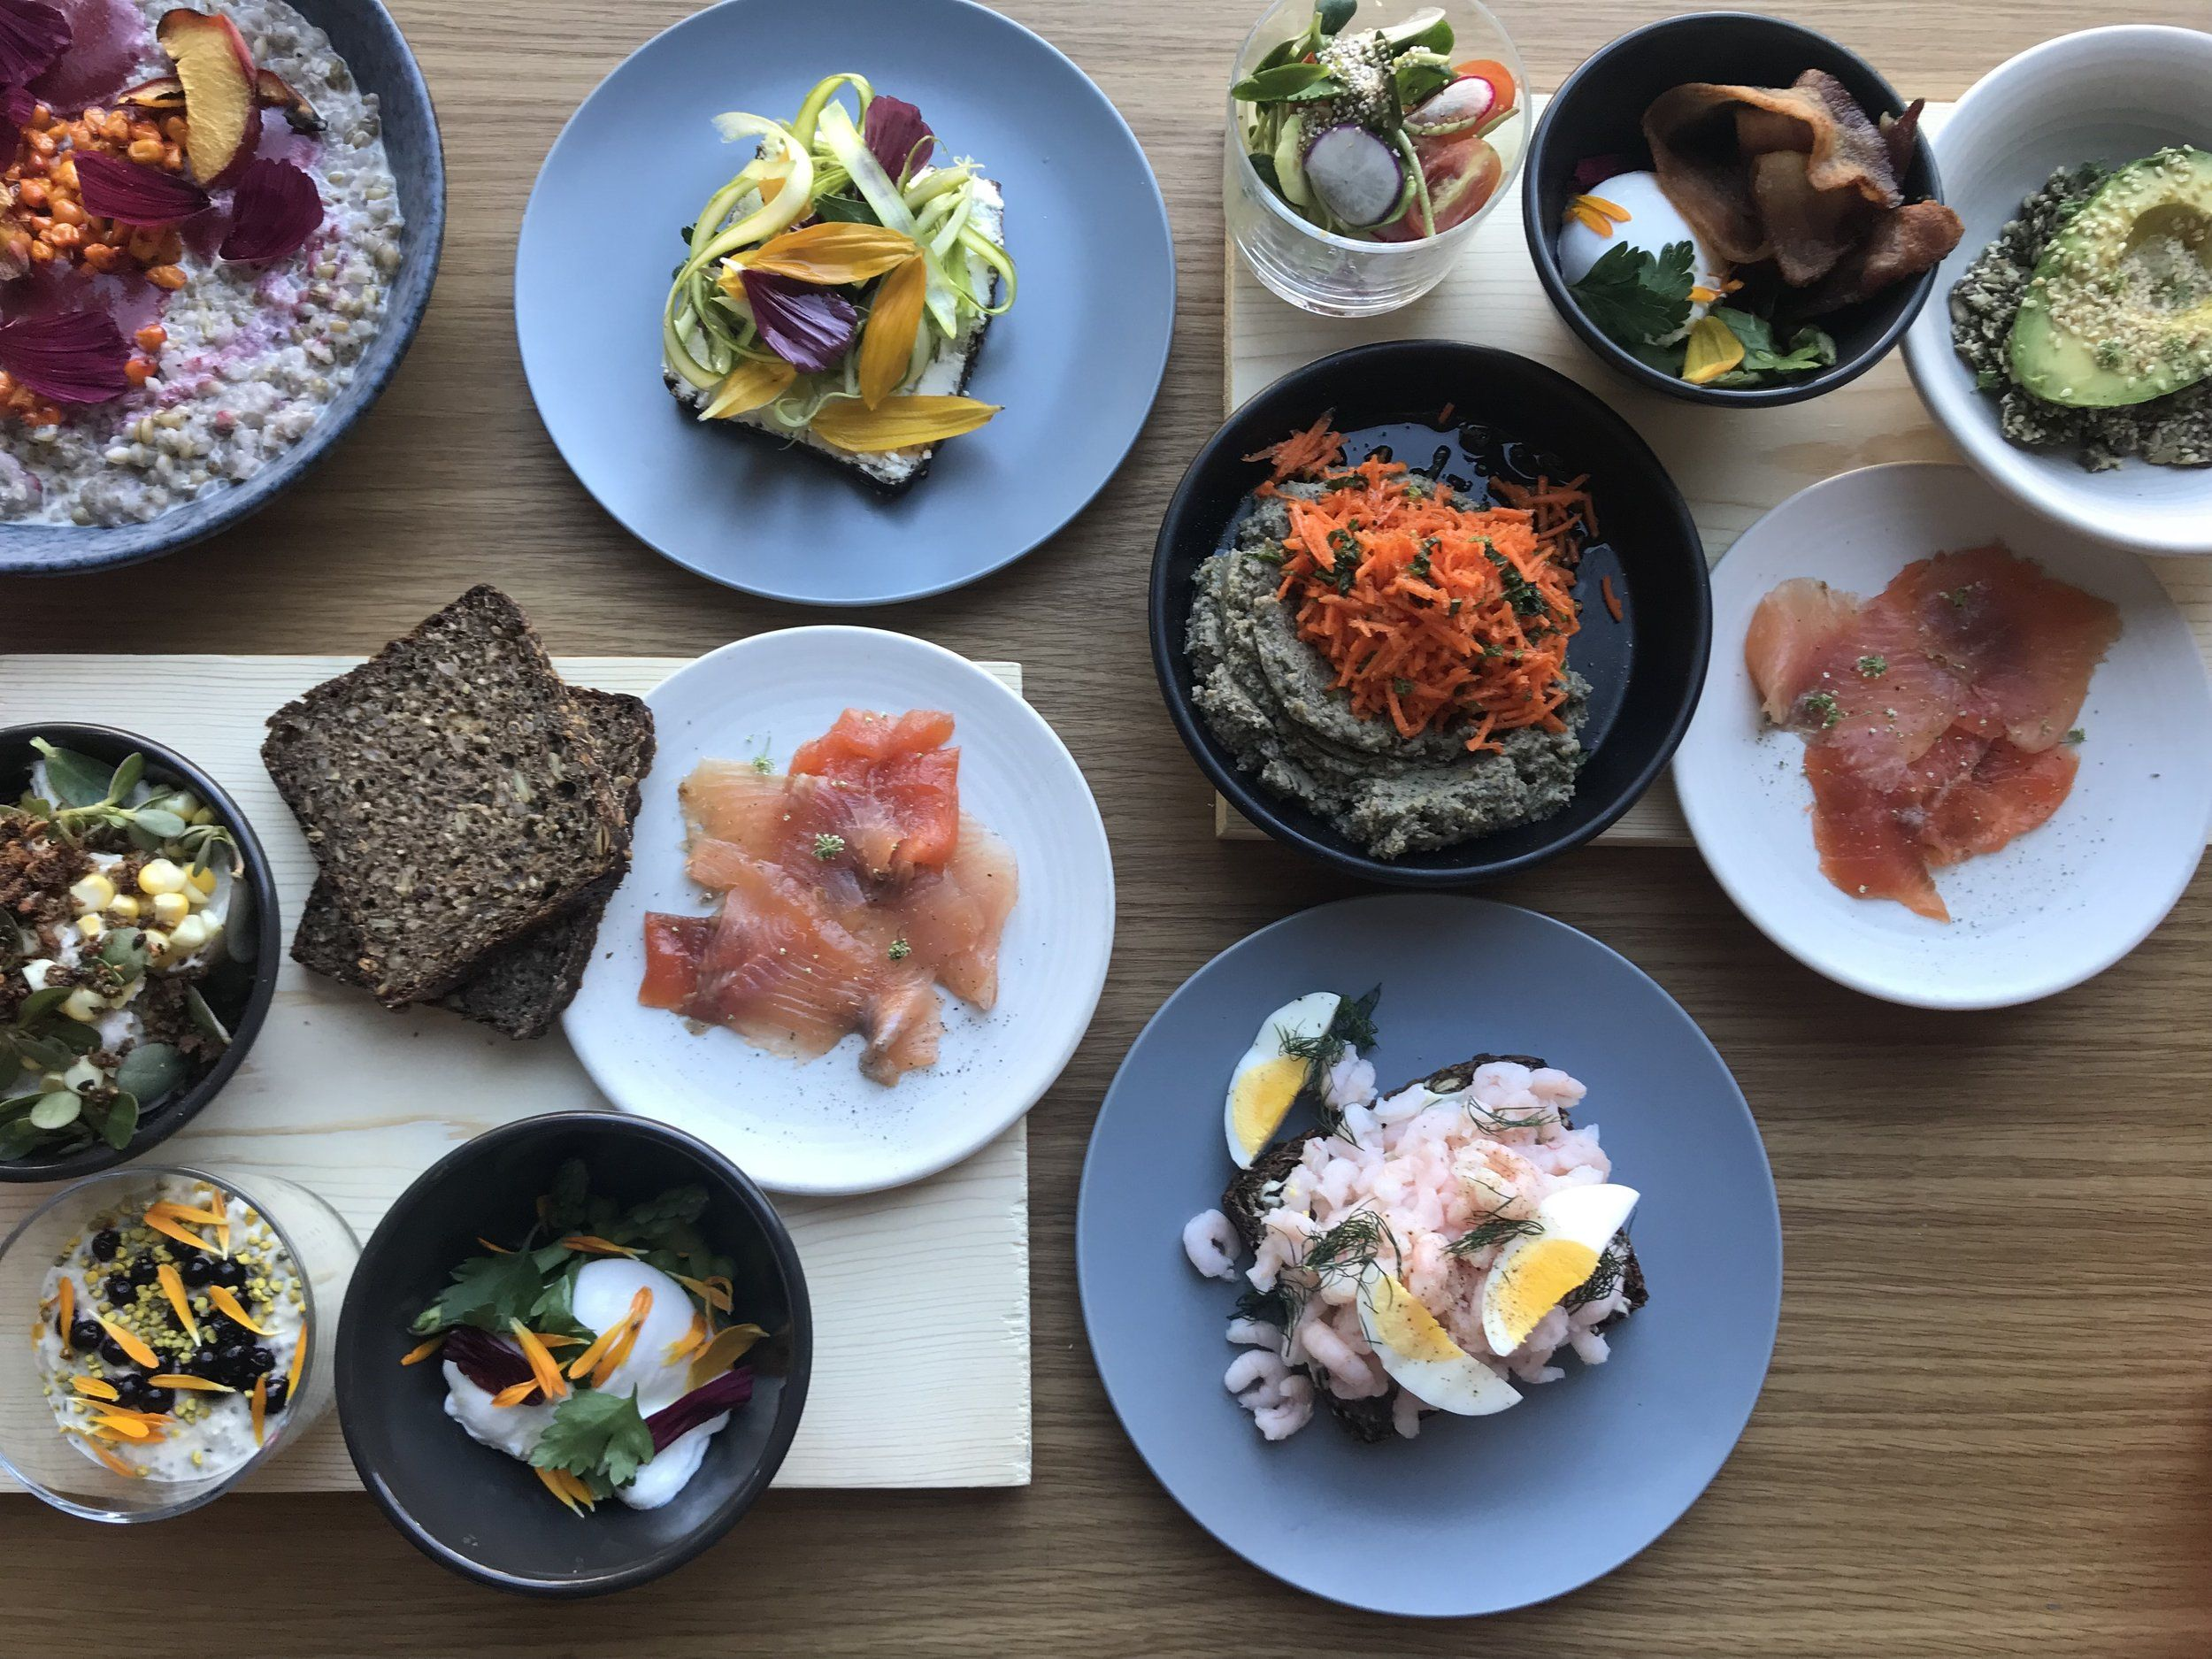 Little Dishes To Mix And Match Love The Clean Scandinavian Food Here In 2020 Scandinavian Food Fried Breakfast Baking With Olive Oil